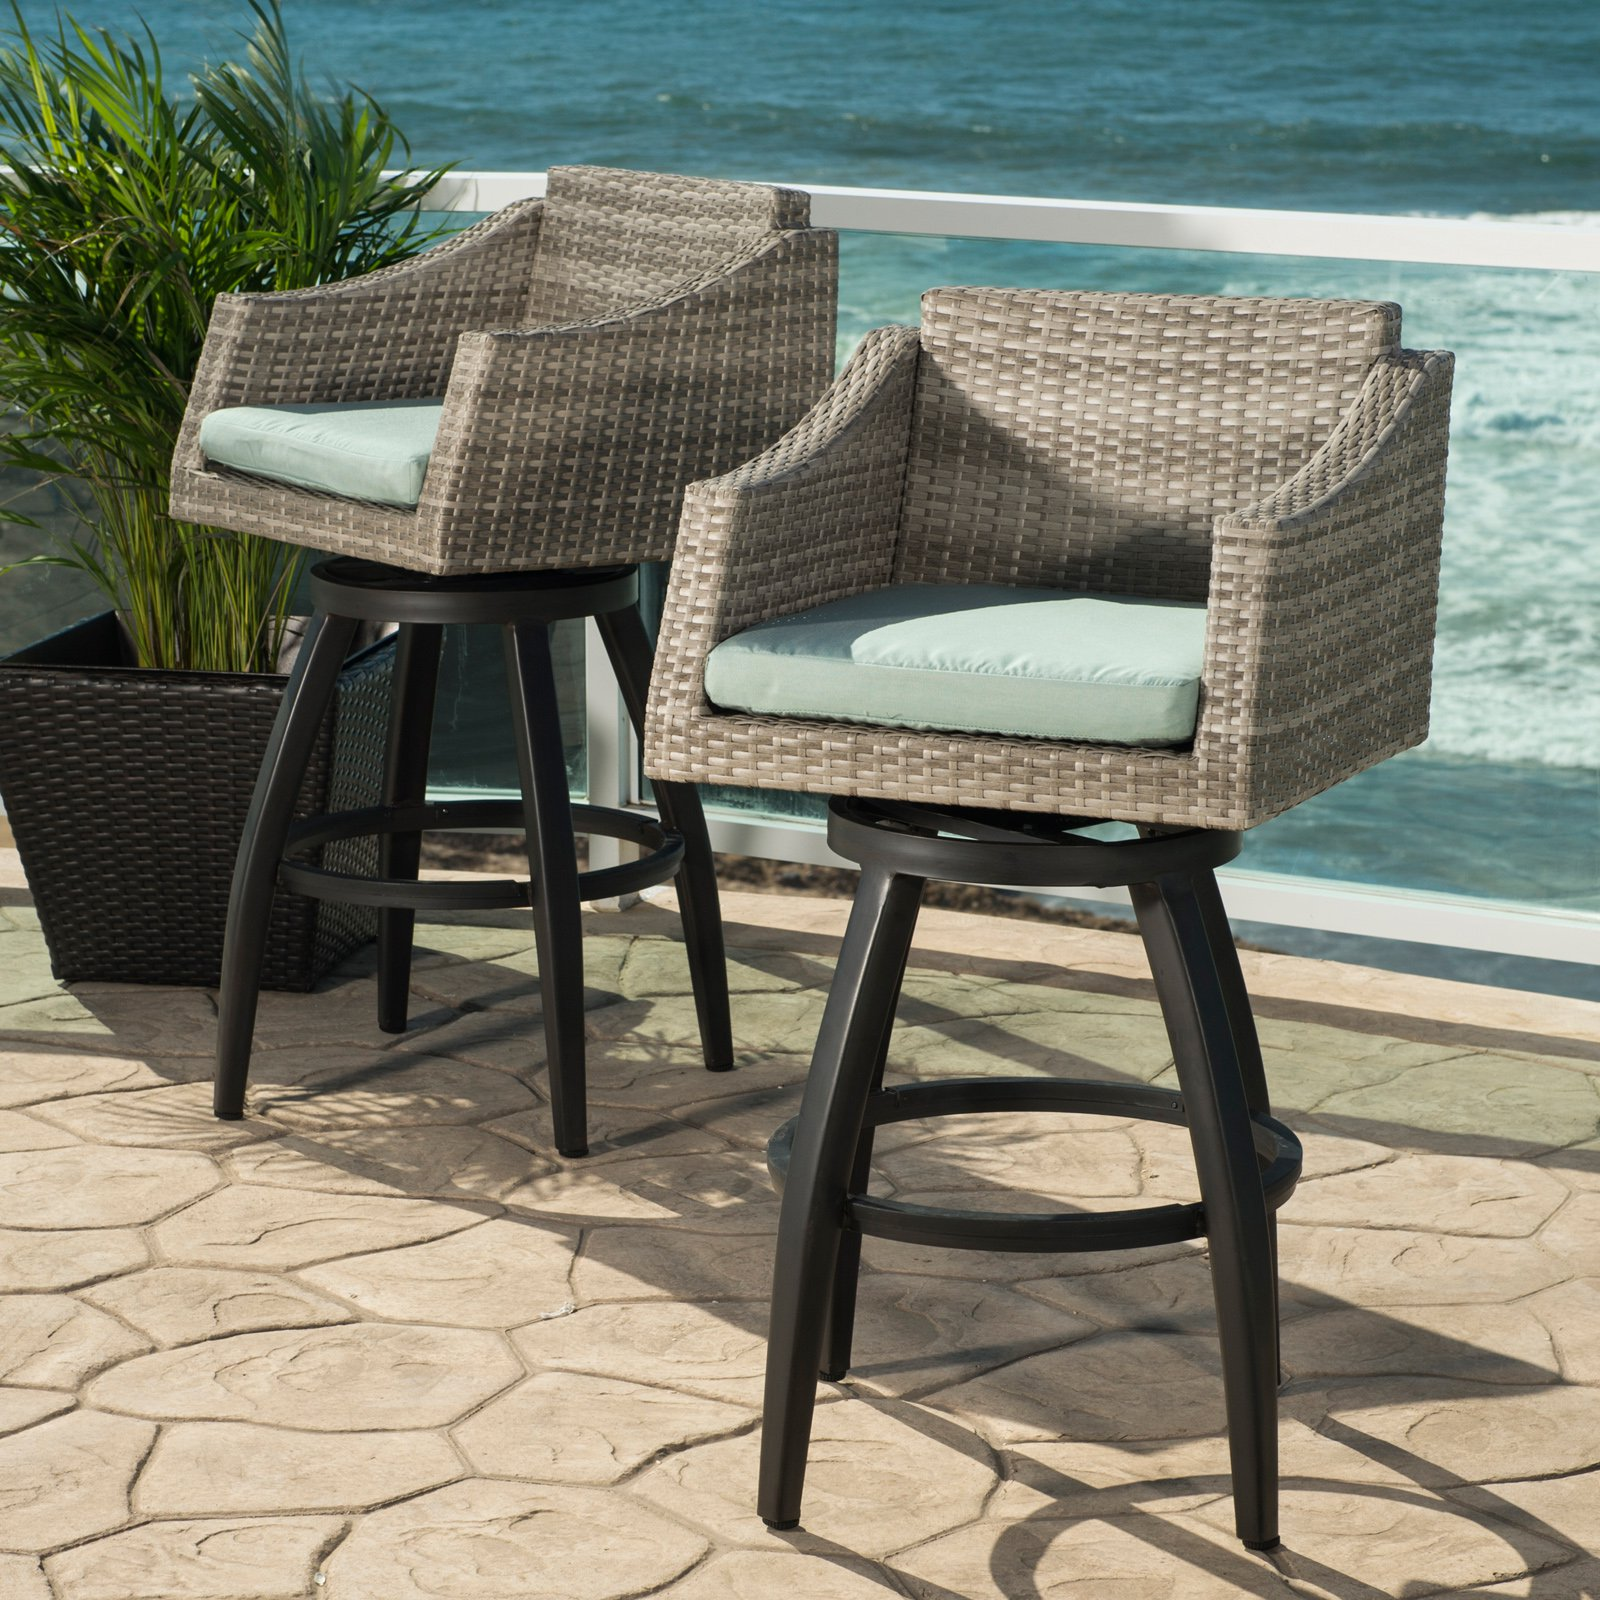 Cannes Set of 2 Swivel Barstools in Sunbrella Spa Blue by RST Brands